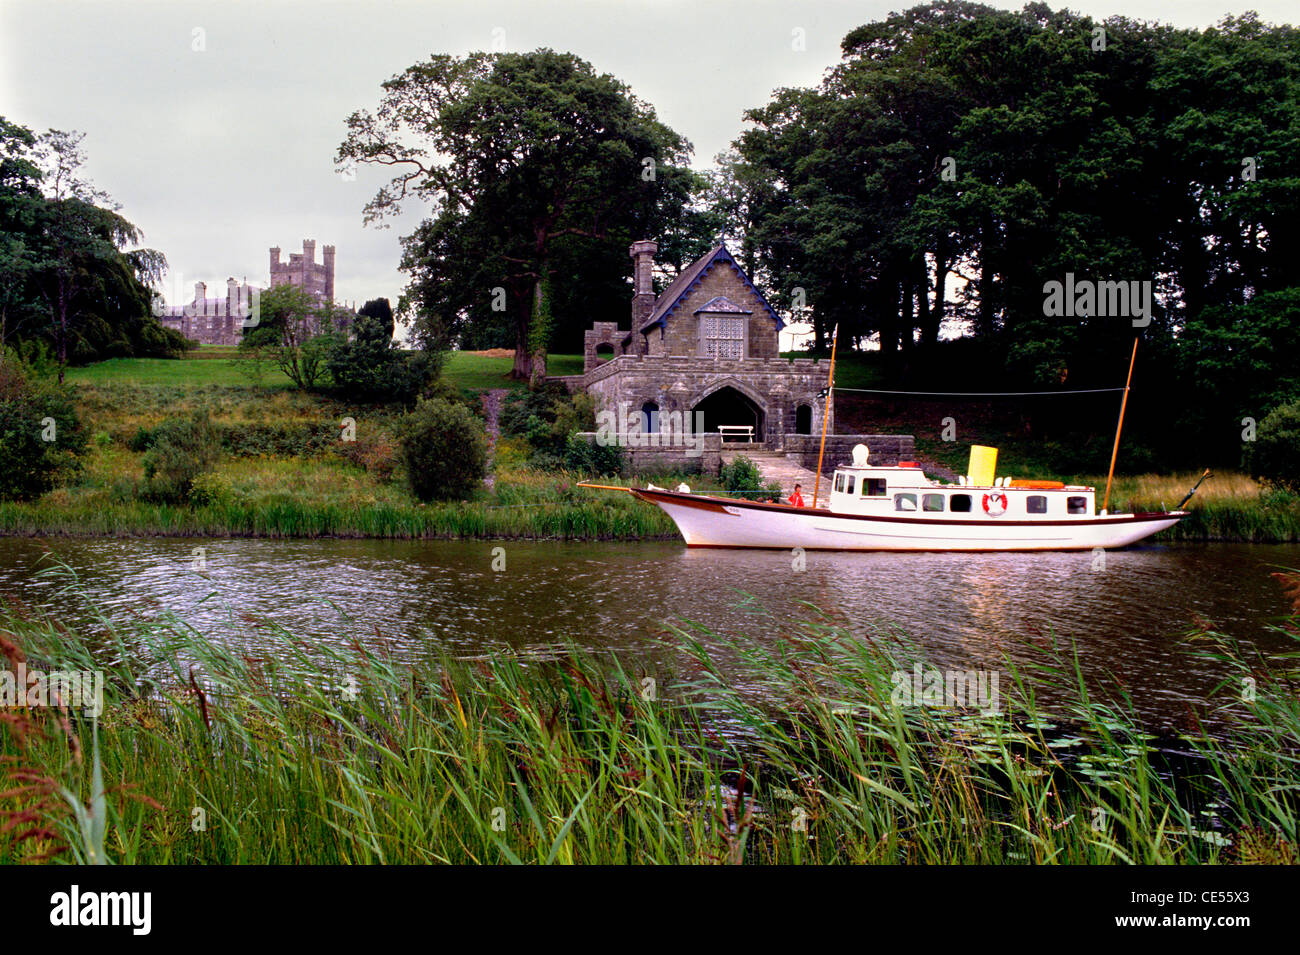 Castle Crom, County Fermanagh, Northern Ireland - Stock Image